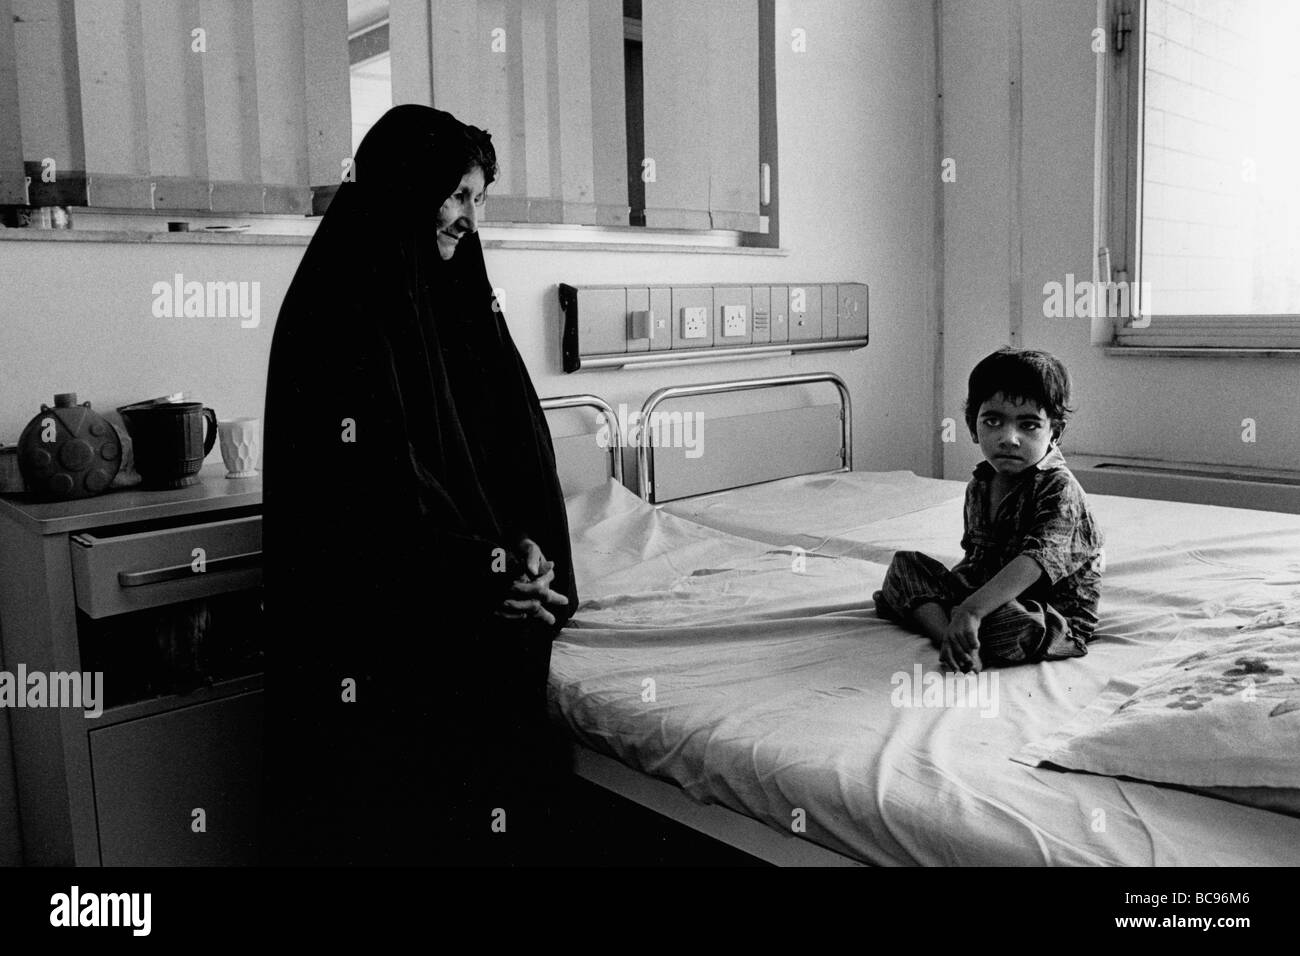 Hussein Black and White Stock Photos & Images - Page 3 - Alamy